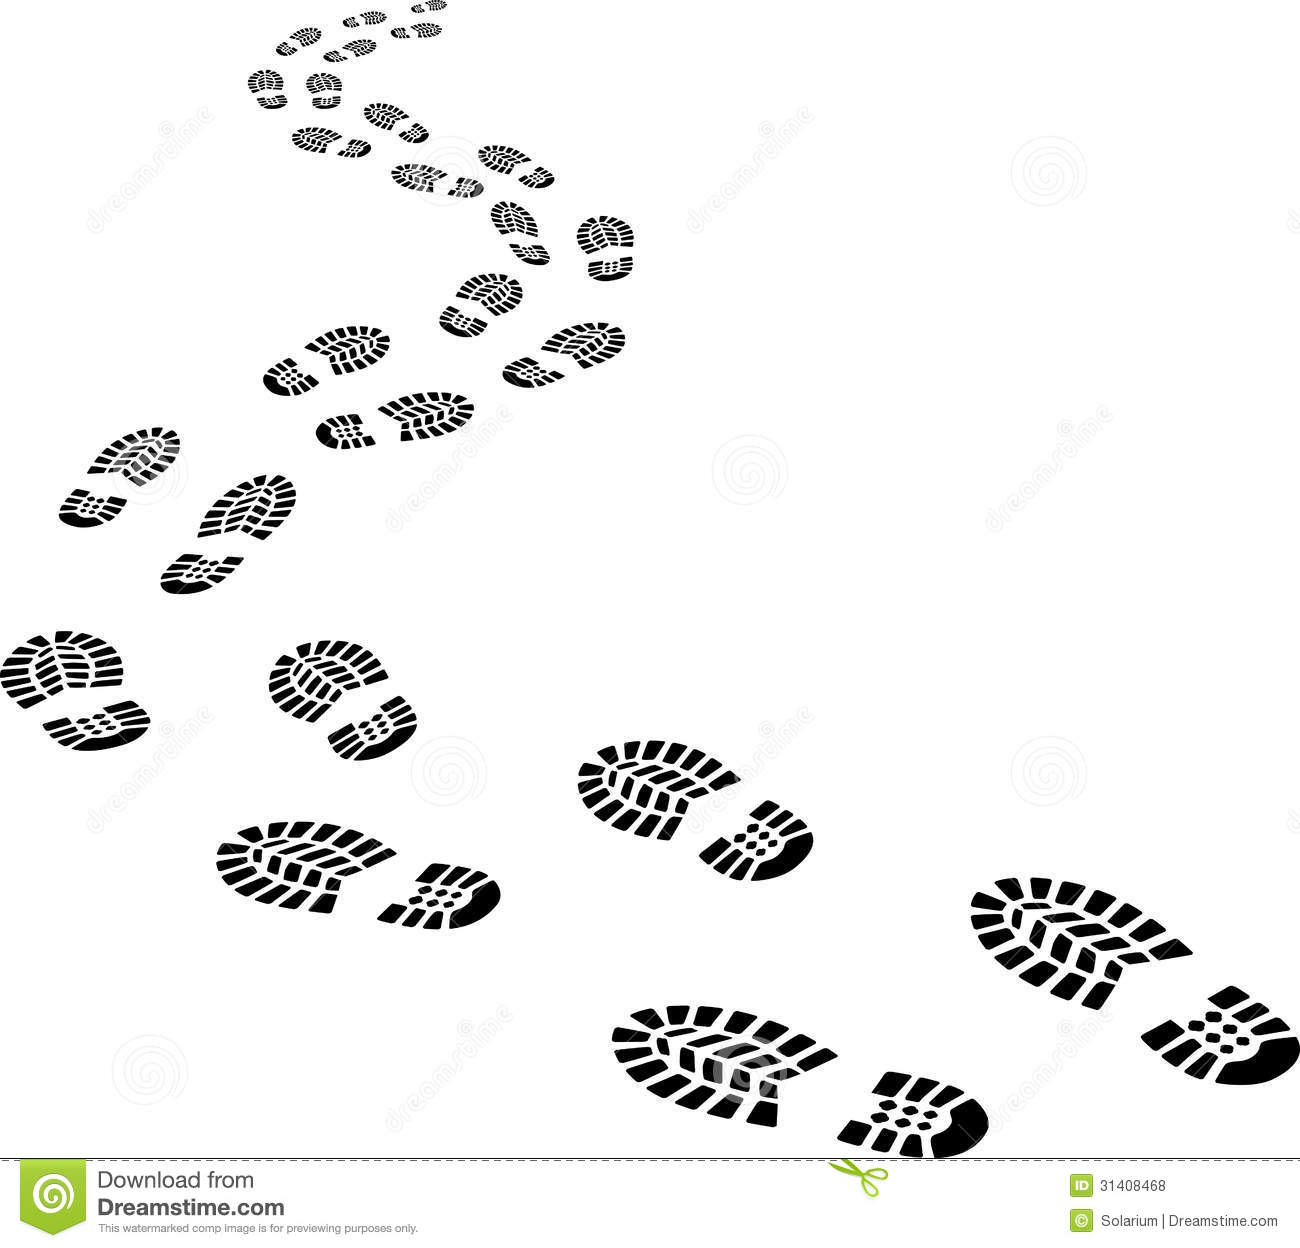 Walking Footprints Clipart.